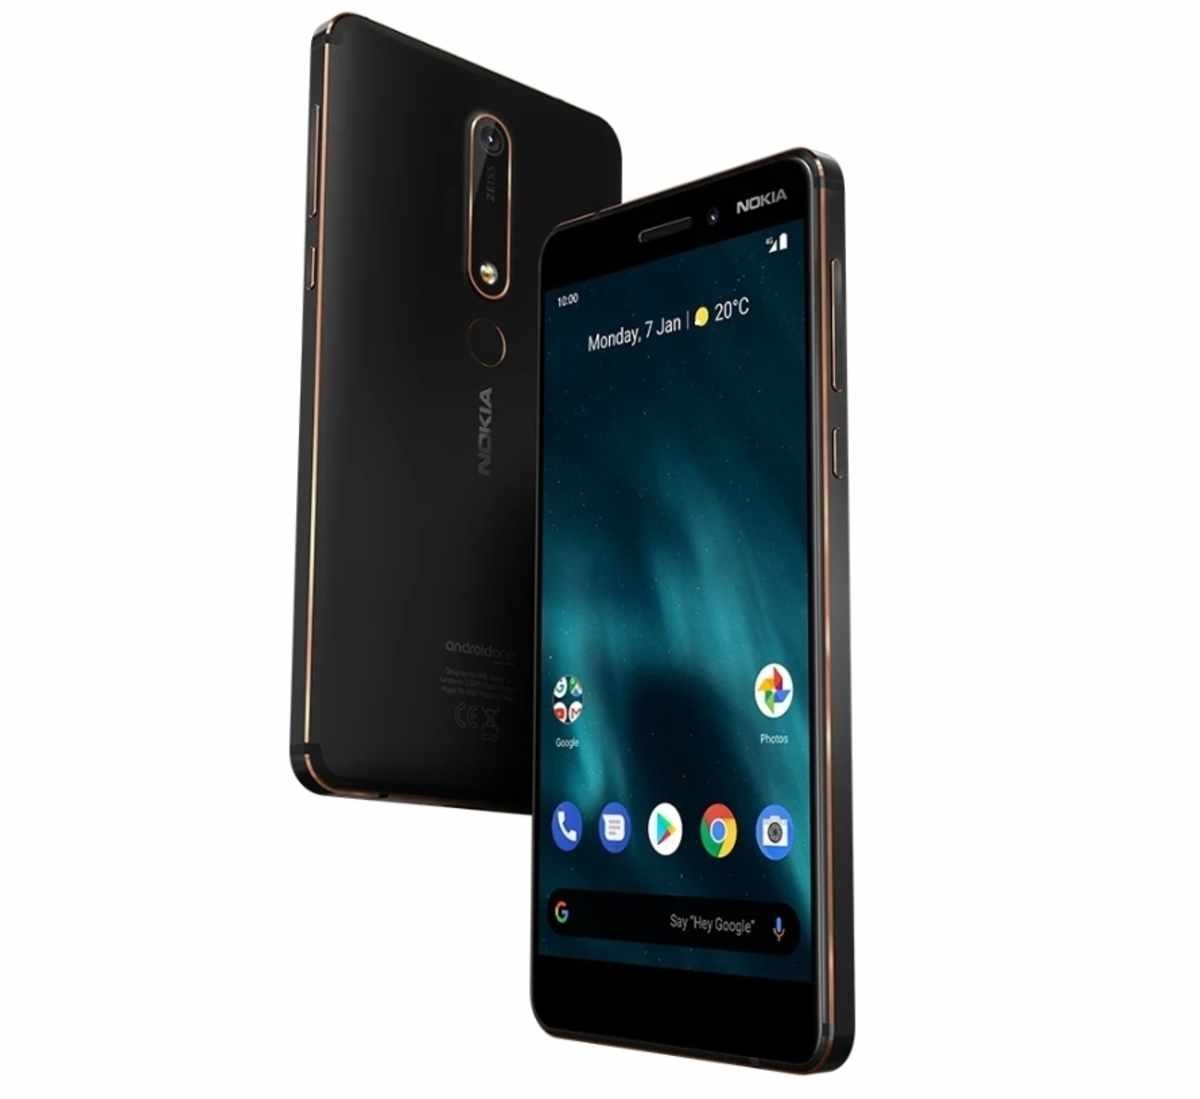 Nokia 6.1, Nokia 6.1 price in Nigeria, price and specs of Nokia 6.1, Nokia 6.1 specs and price in Nigeria, Nokia 6.1 specs, Nokia phones price in Nigeria